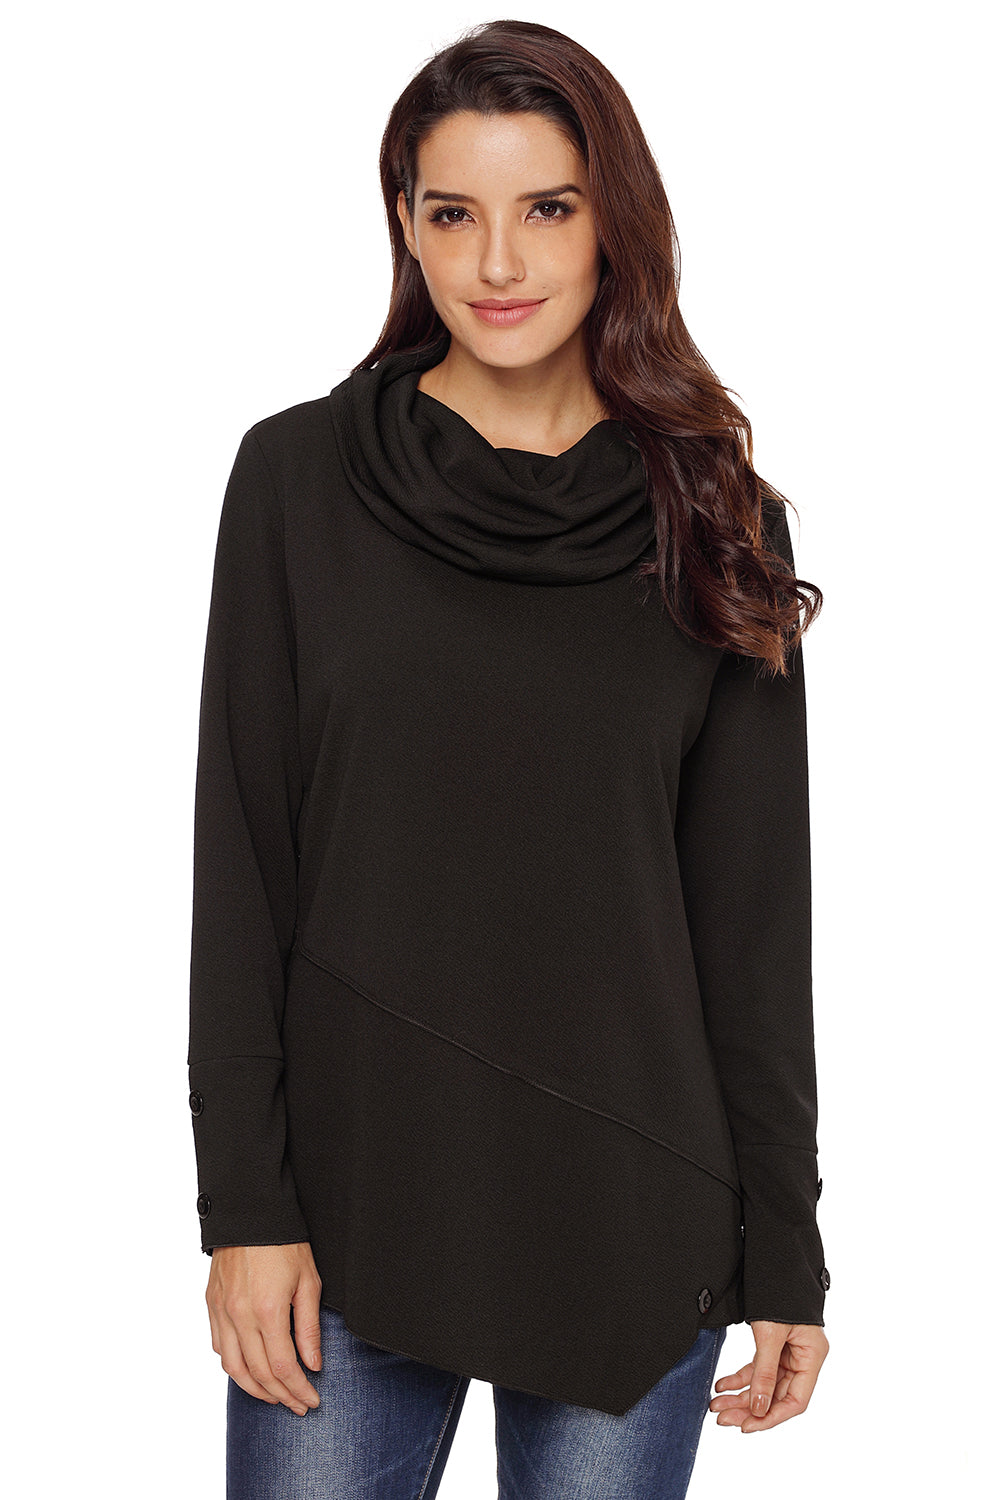 Black Button Detail Asymmetric Cowl Neck Sweatshirt - Its Trendy Frenzy